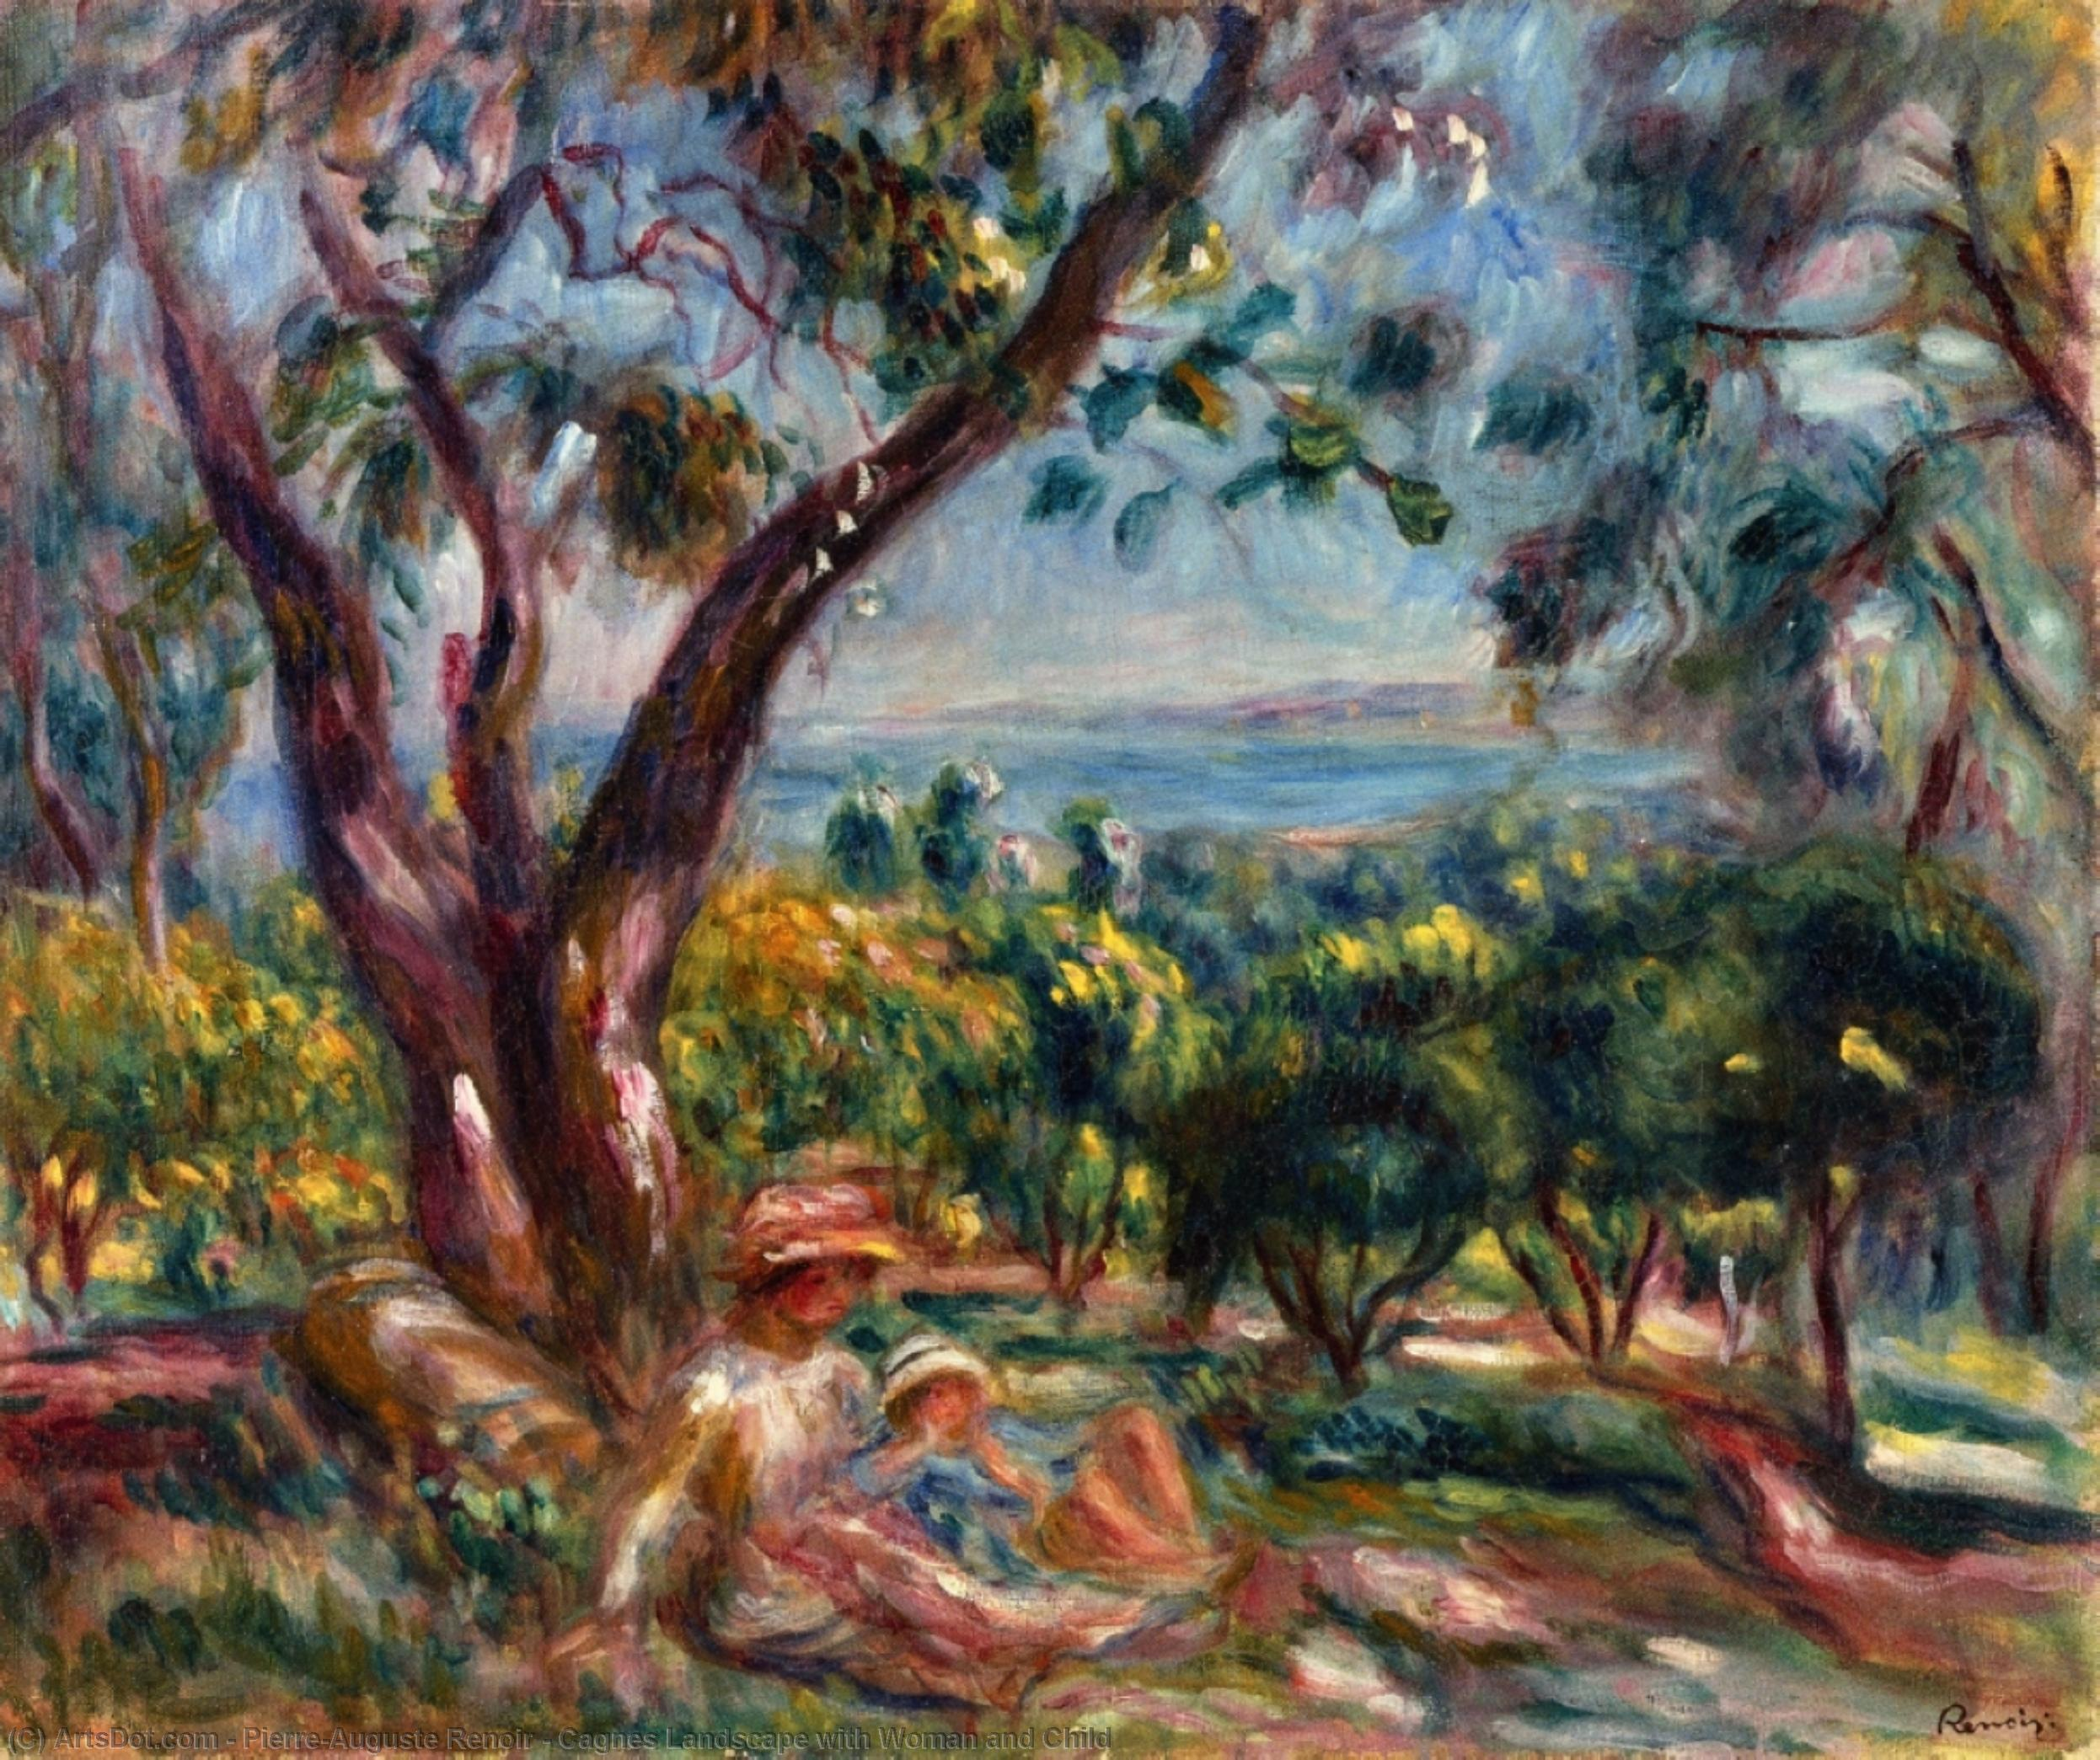 Cagnes Landscape with Woman and Child, 1910 by Pierre-Auguste Renoir (1841-1919, France) | Museum Quality Copies Pierre-Auguste Renoir | ArtsDot.com